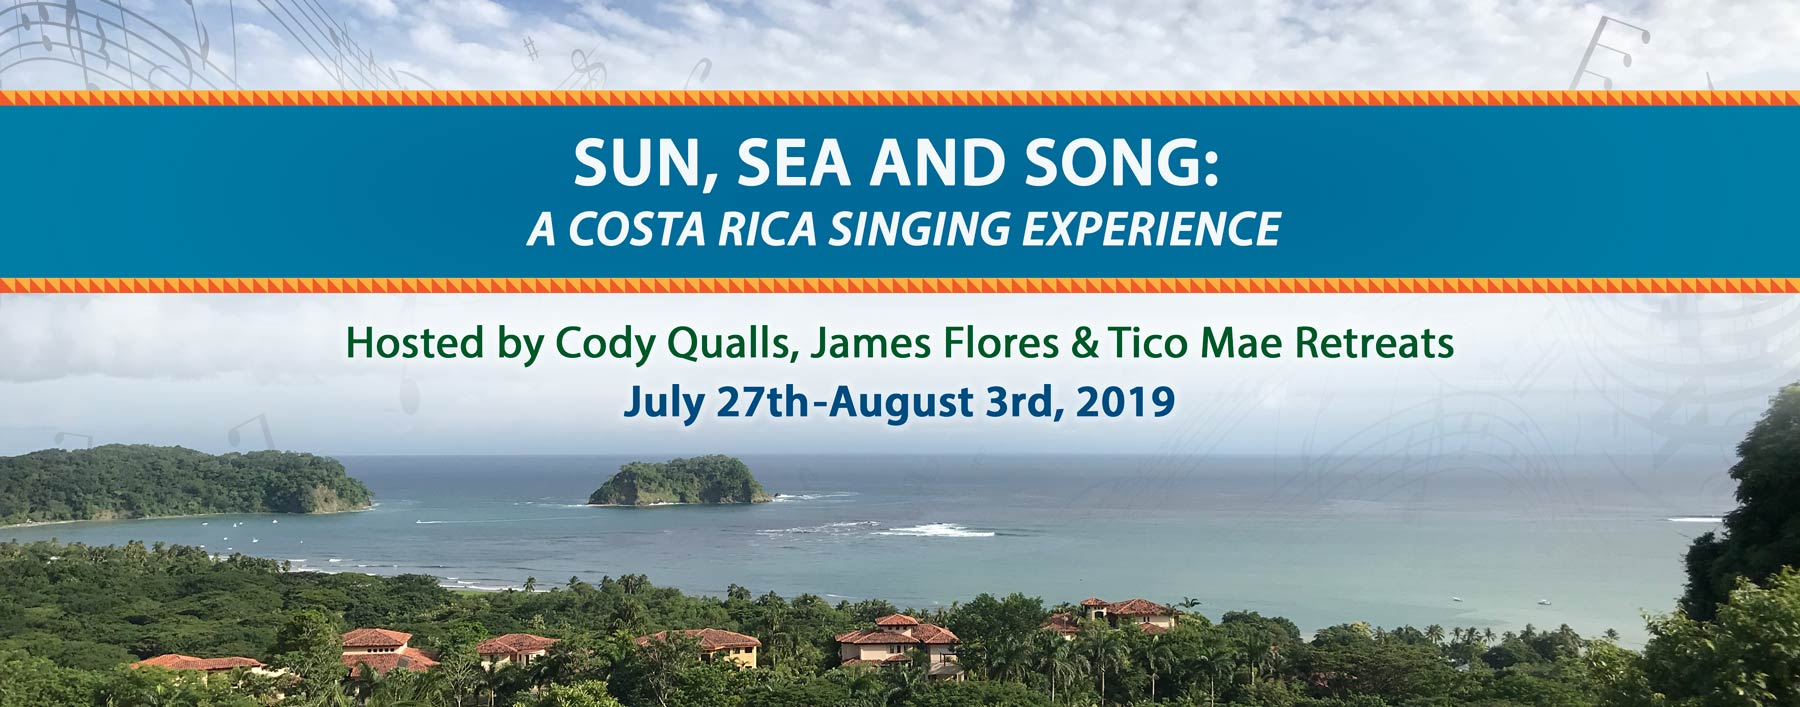 Sun, Sea And Song - A Costa Rica Singing Experience - Tico Mae Retreats